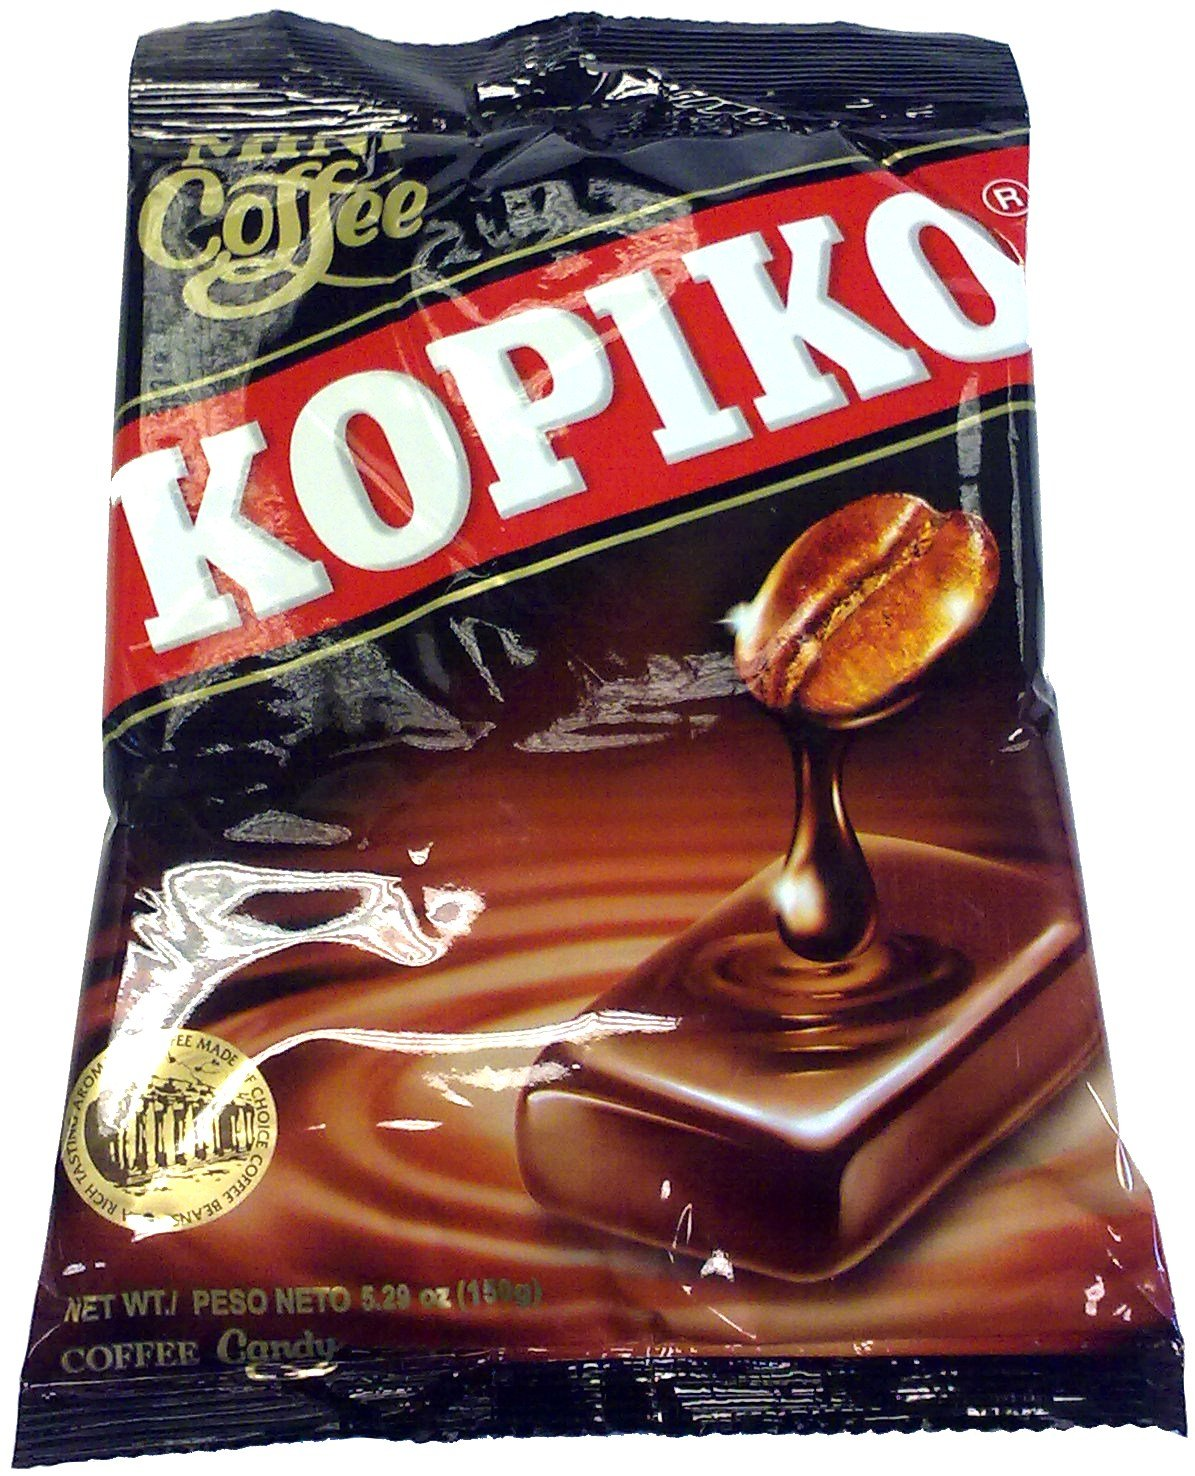 Kopiko Coffee Candy